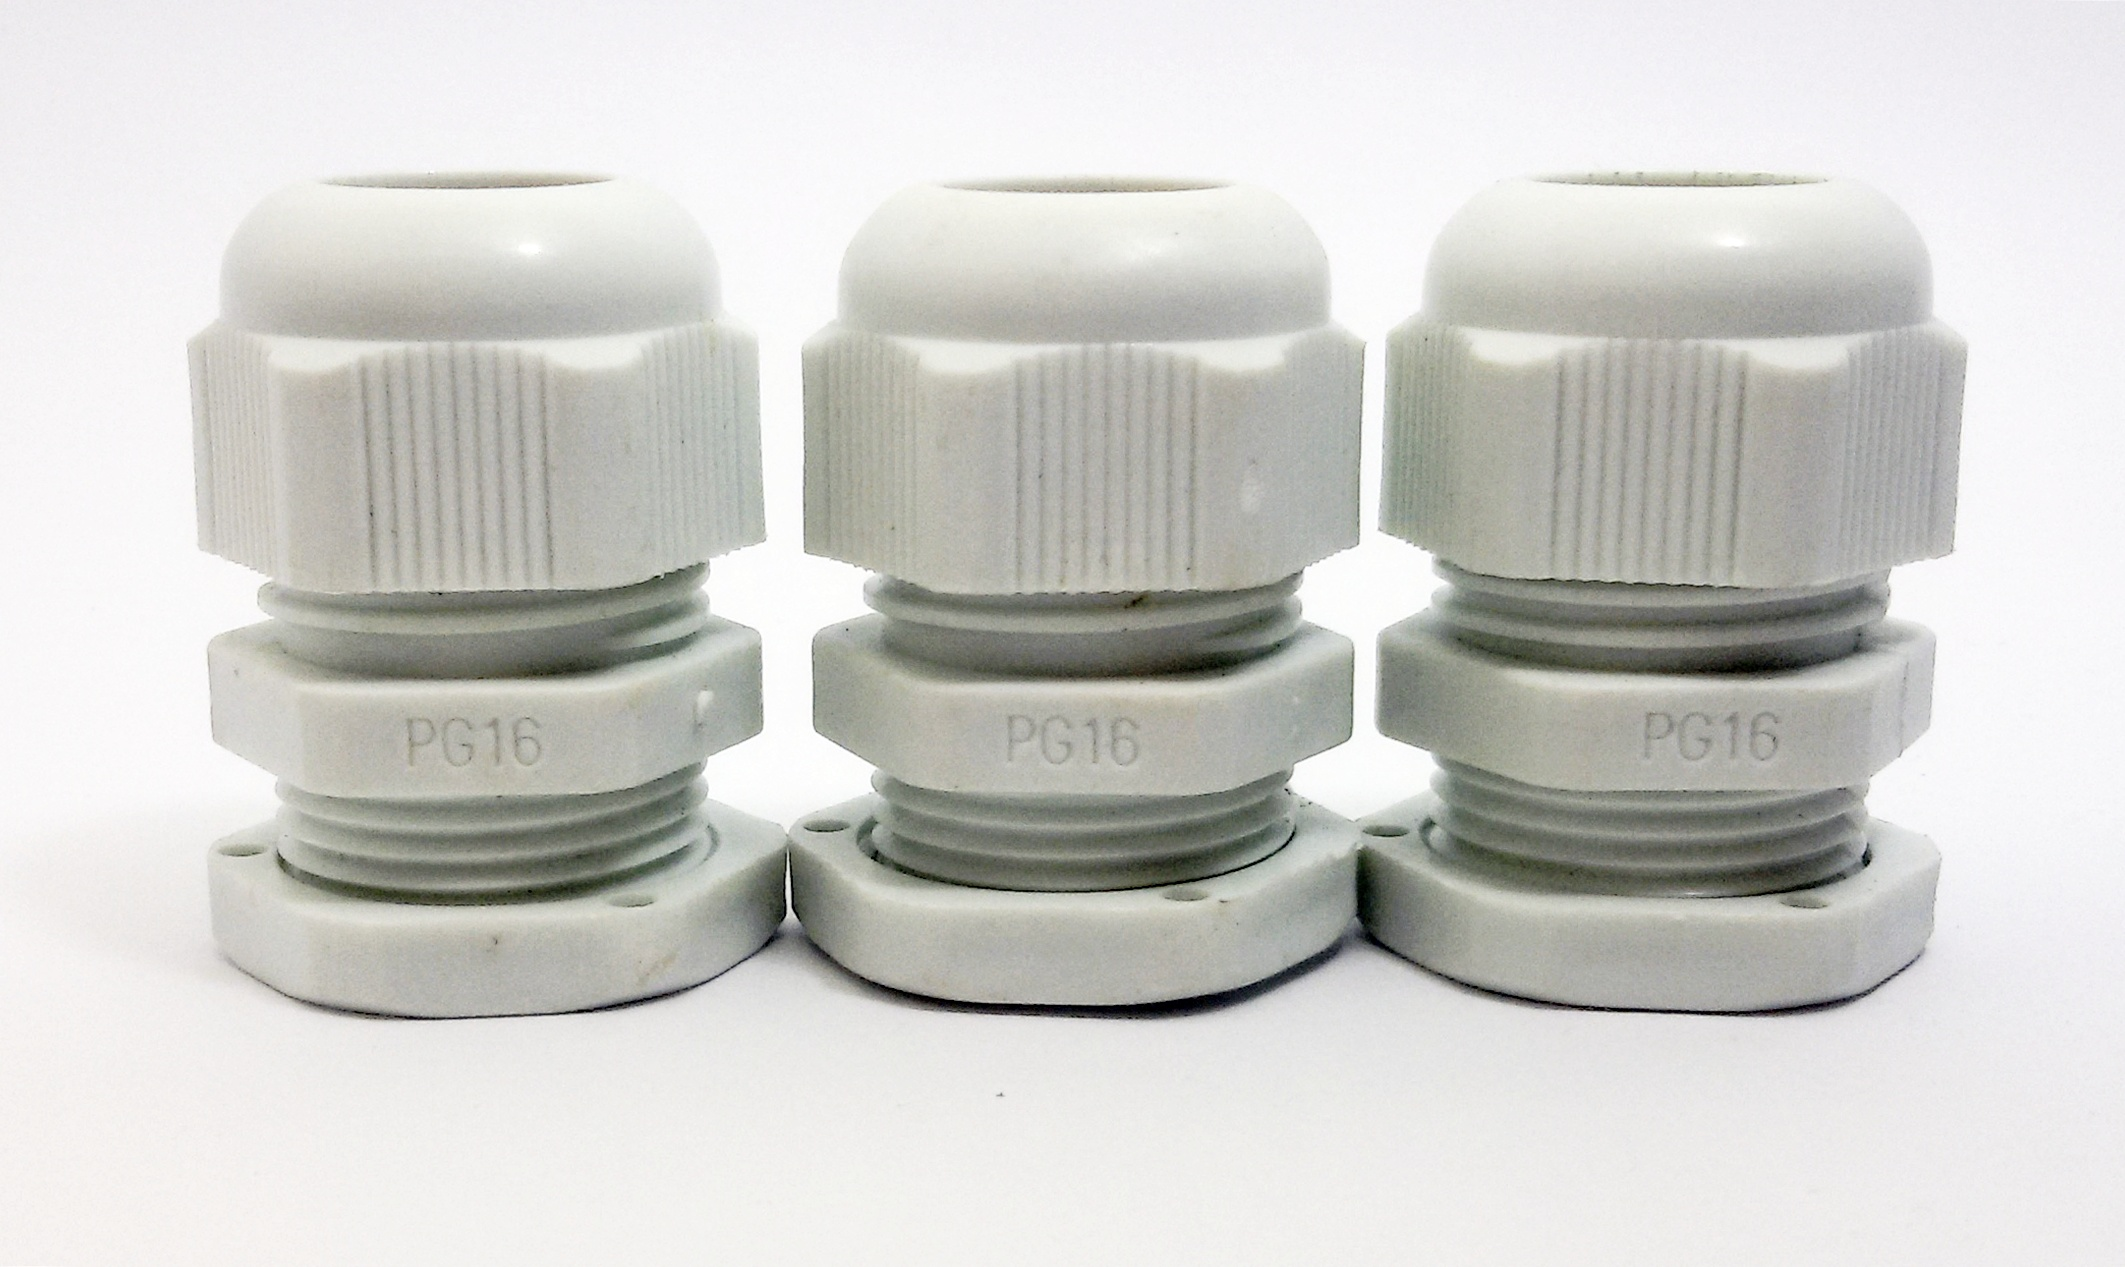 LOBO ELECTRIC CABLE GLAND PG16 10 -14 mm. สีขาว